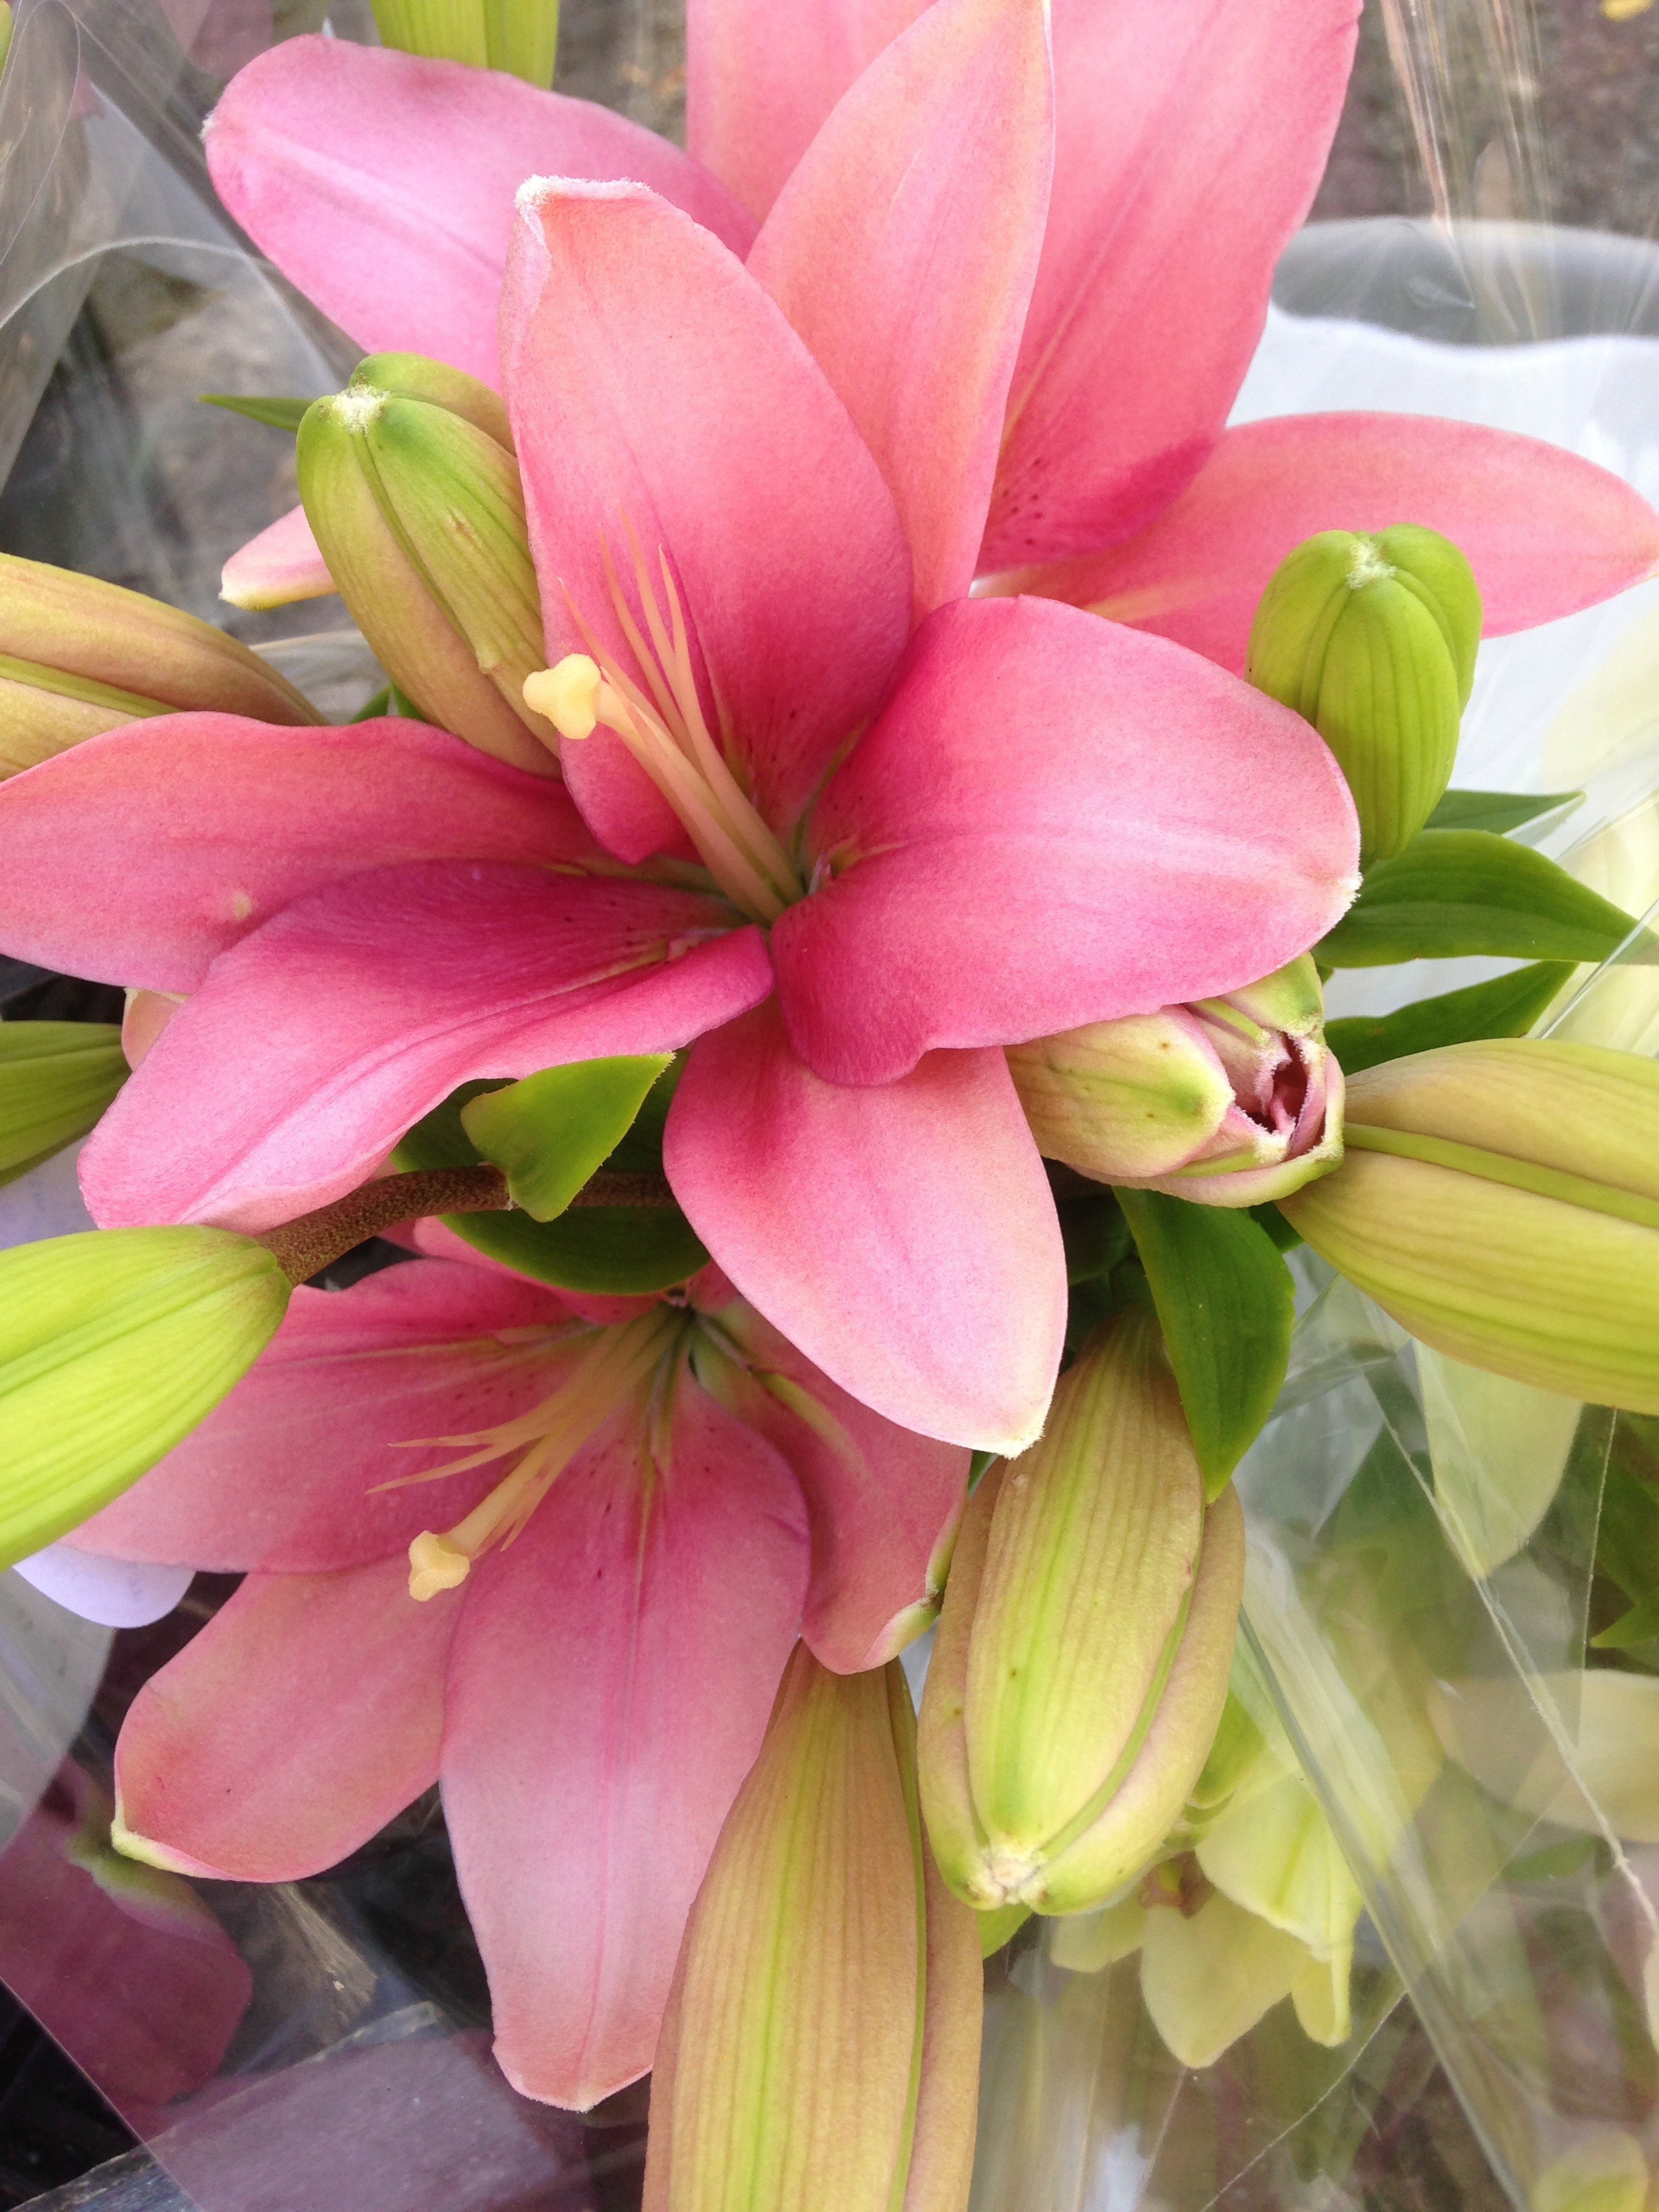 Could use a whiff of lilies right about now.